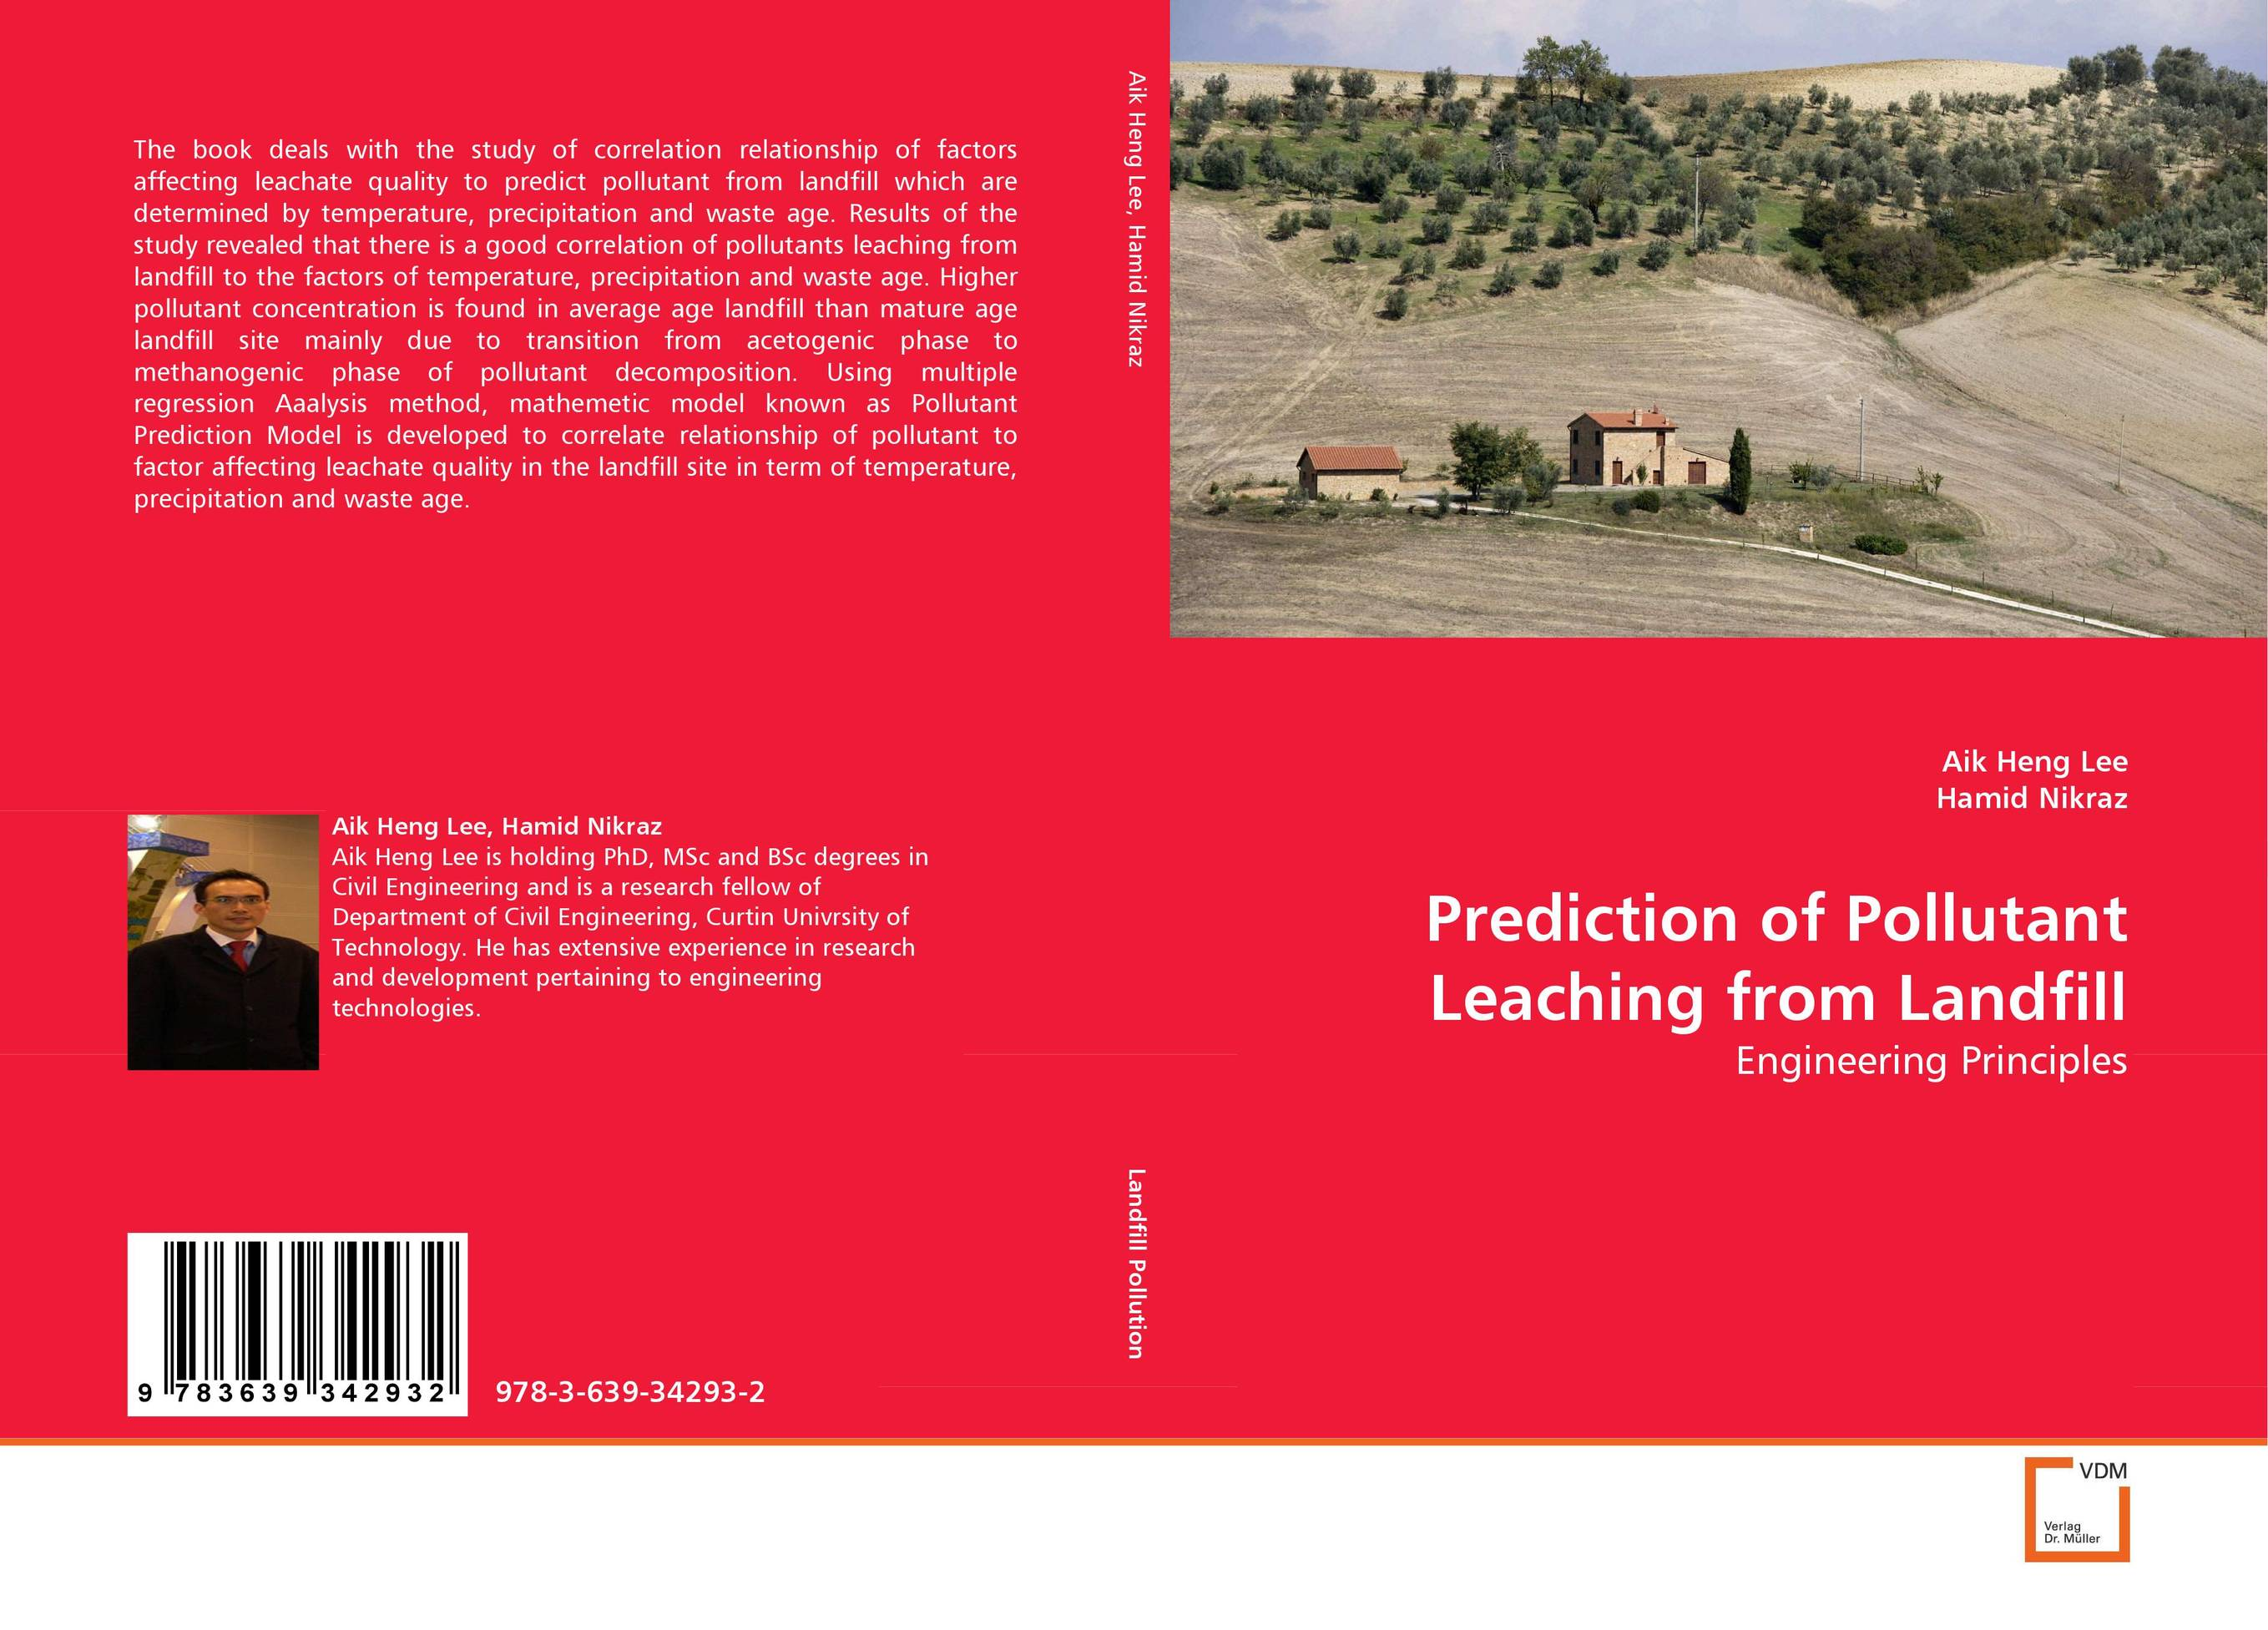 Prediction of Pollutant Leaching from Landfill